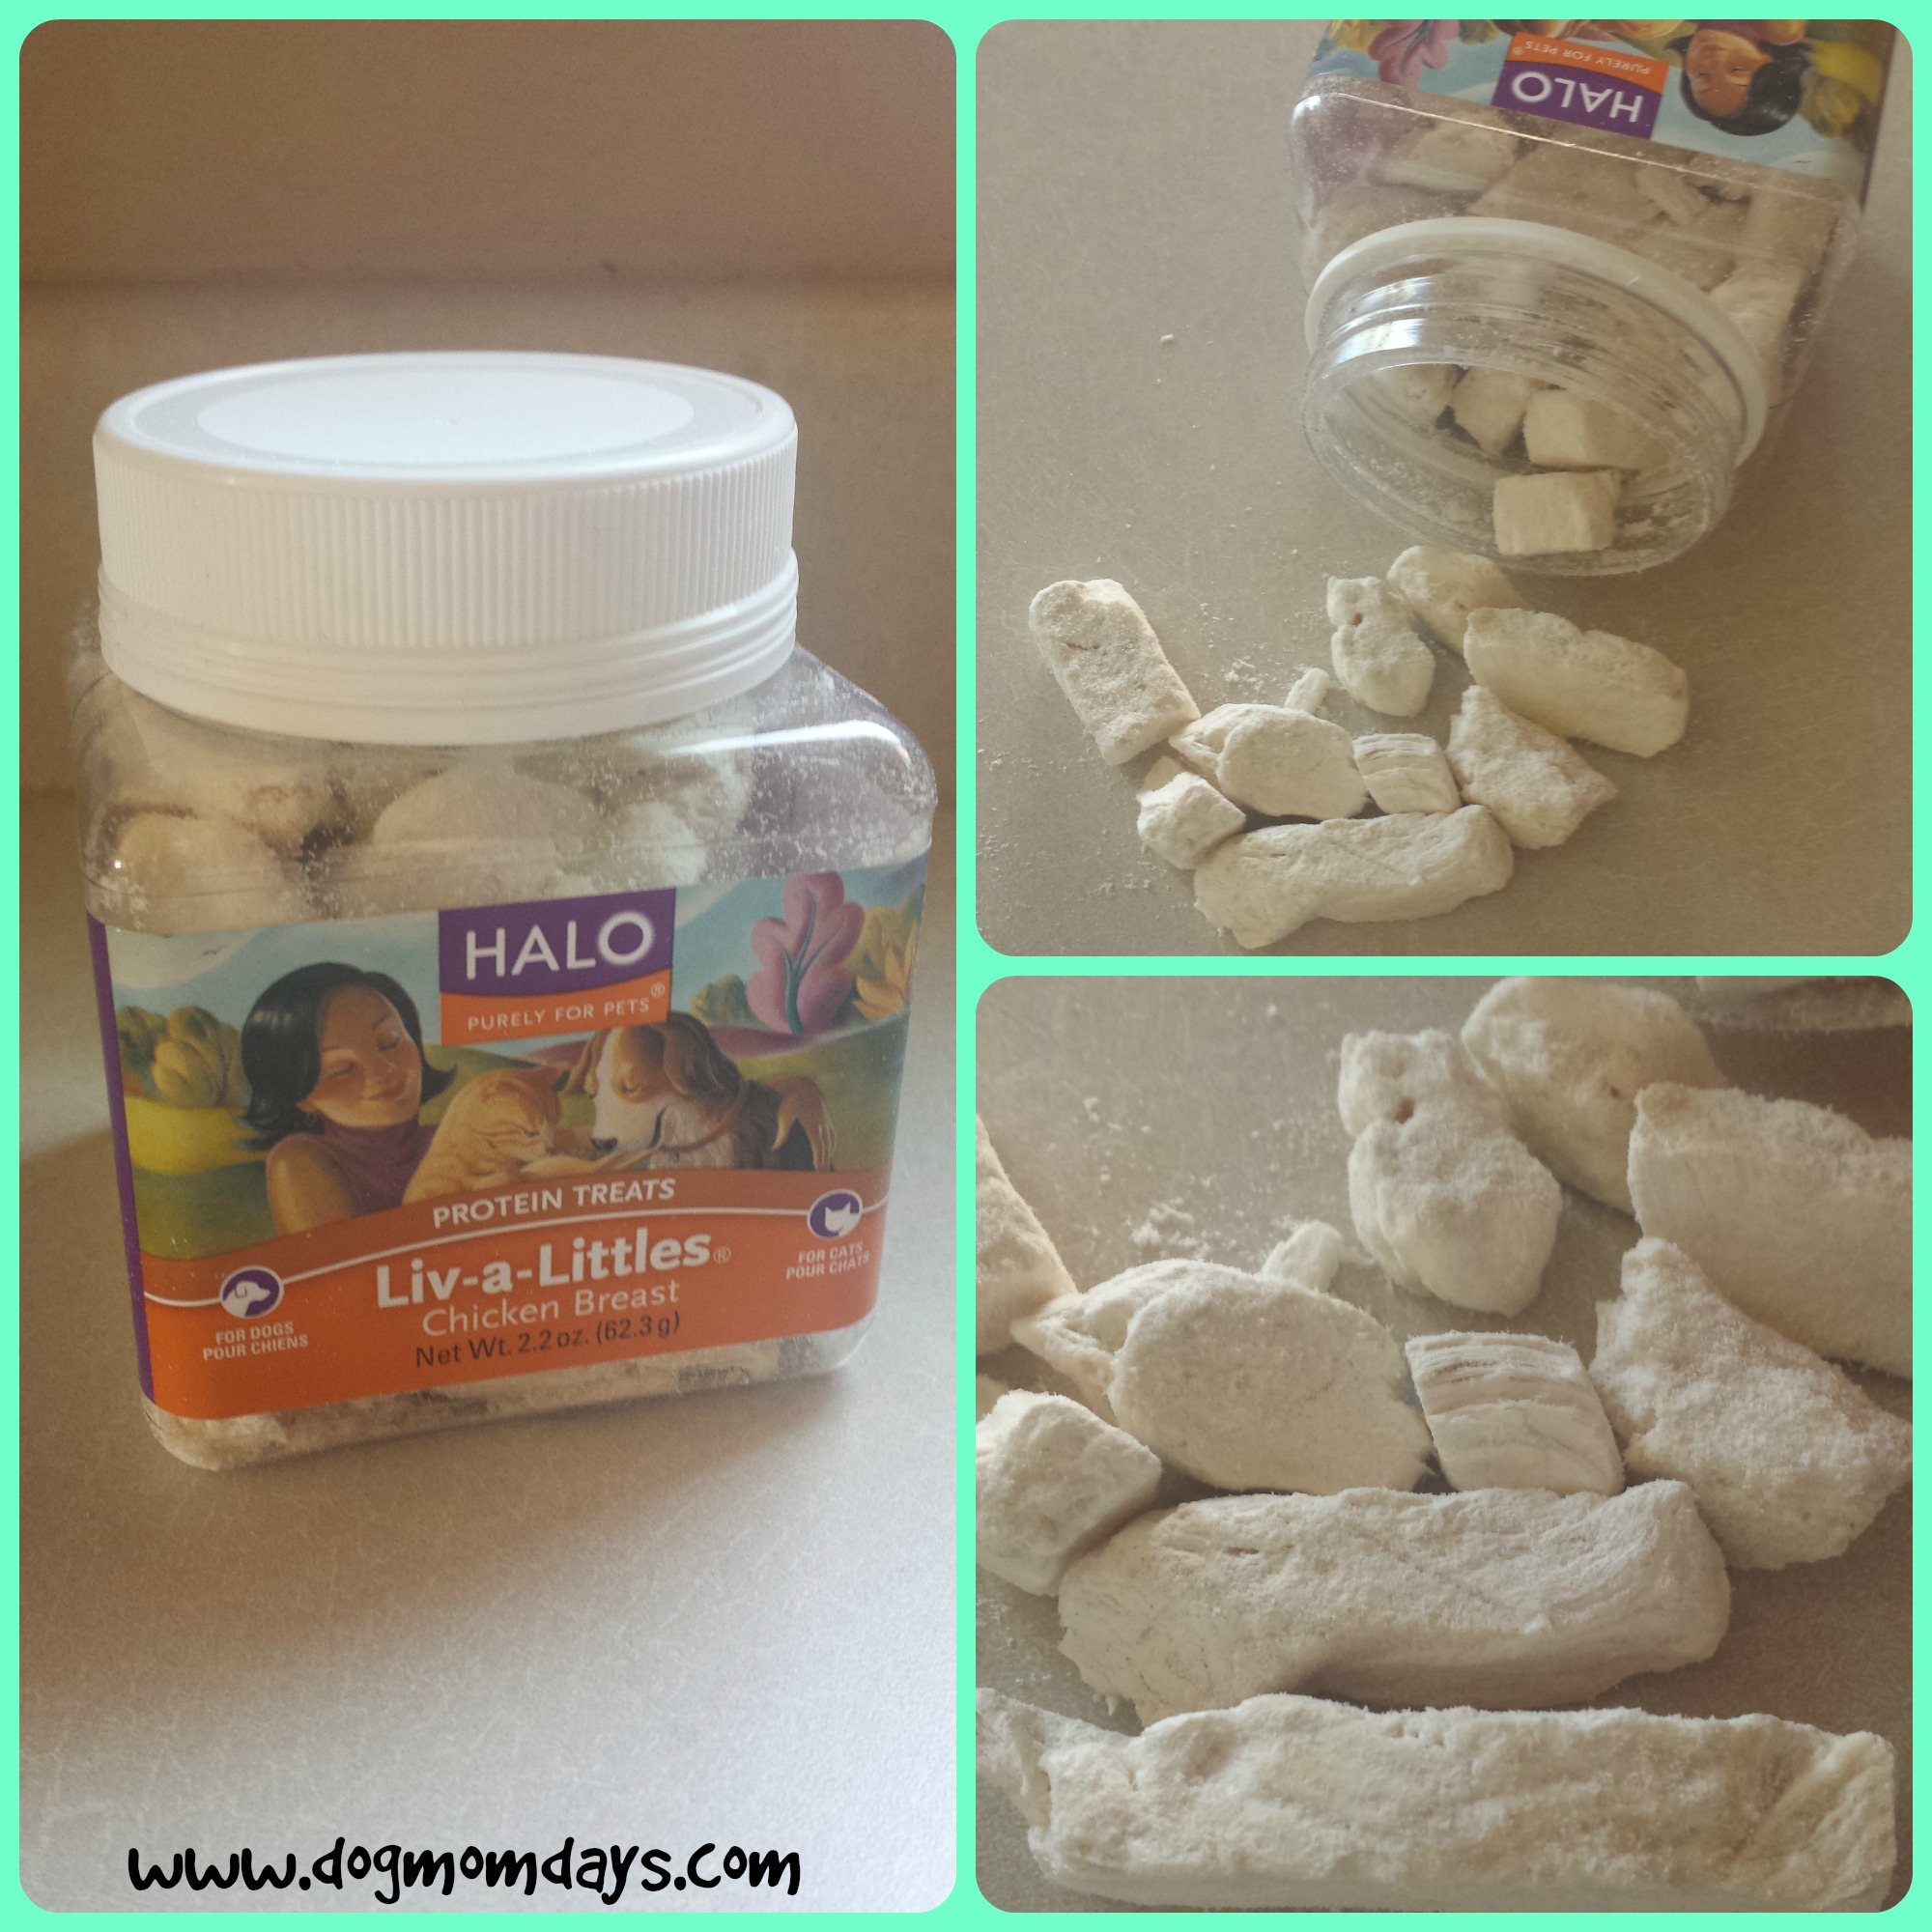 Halo, Purely for Pets Liv-a-littles chicken breast protein treats.